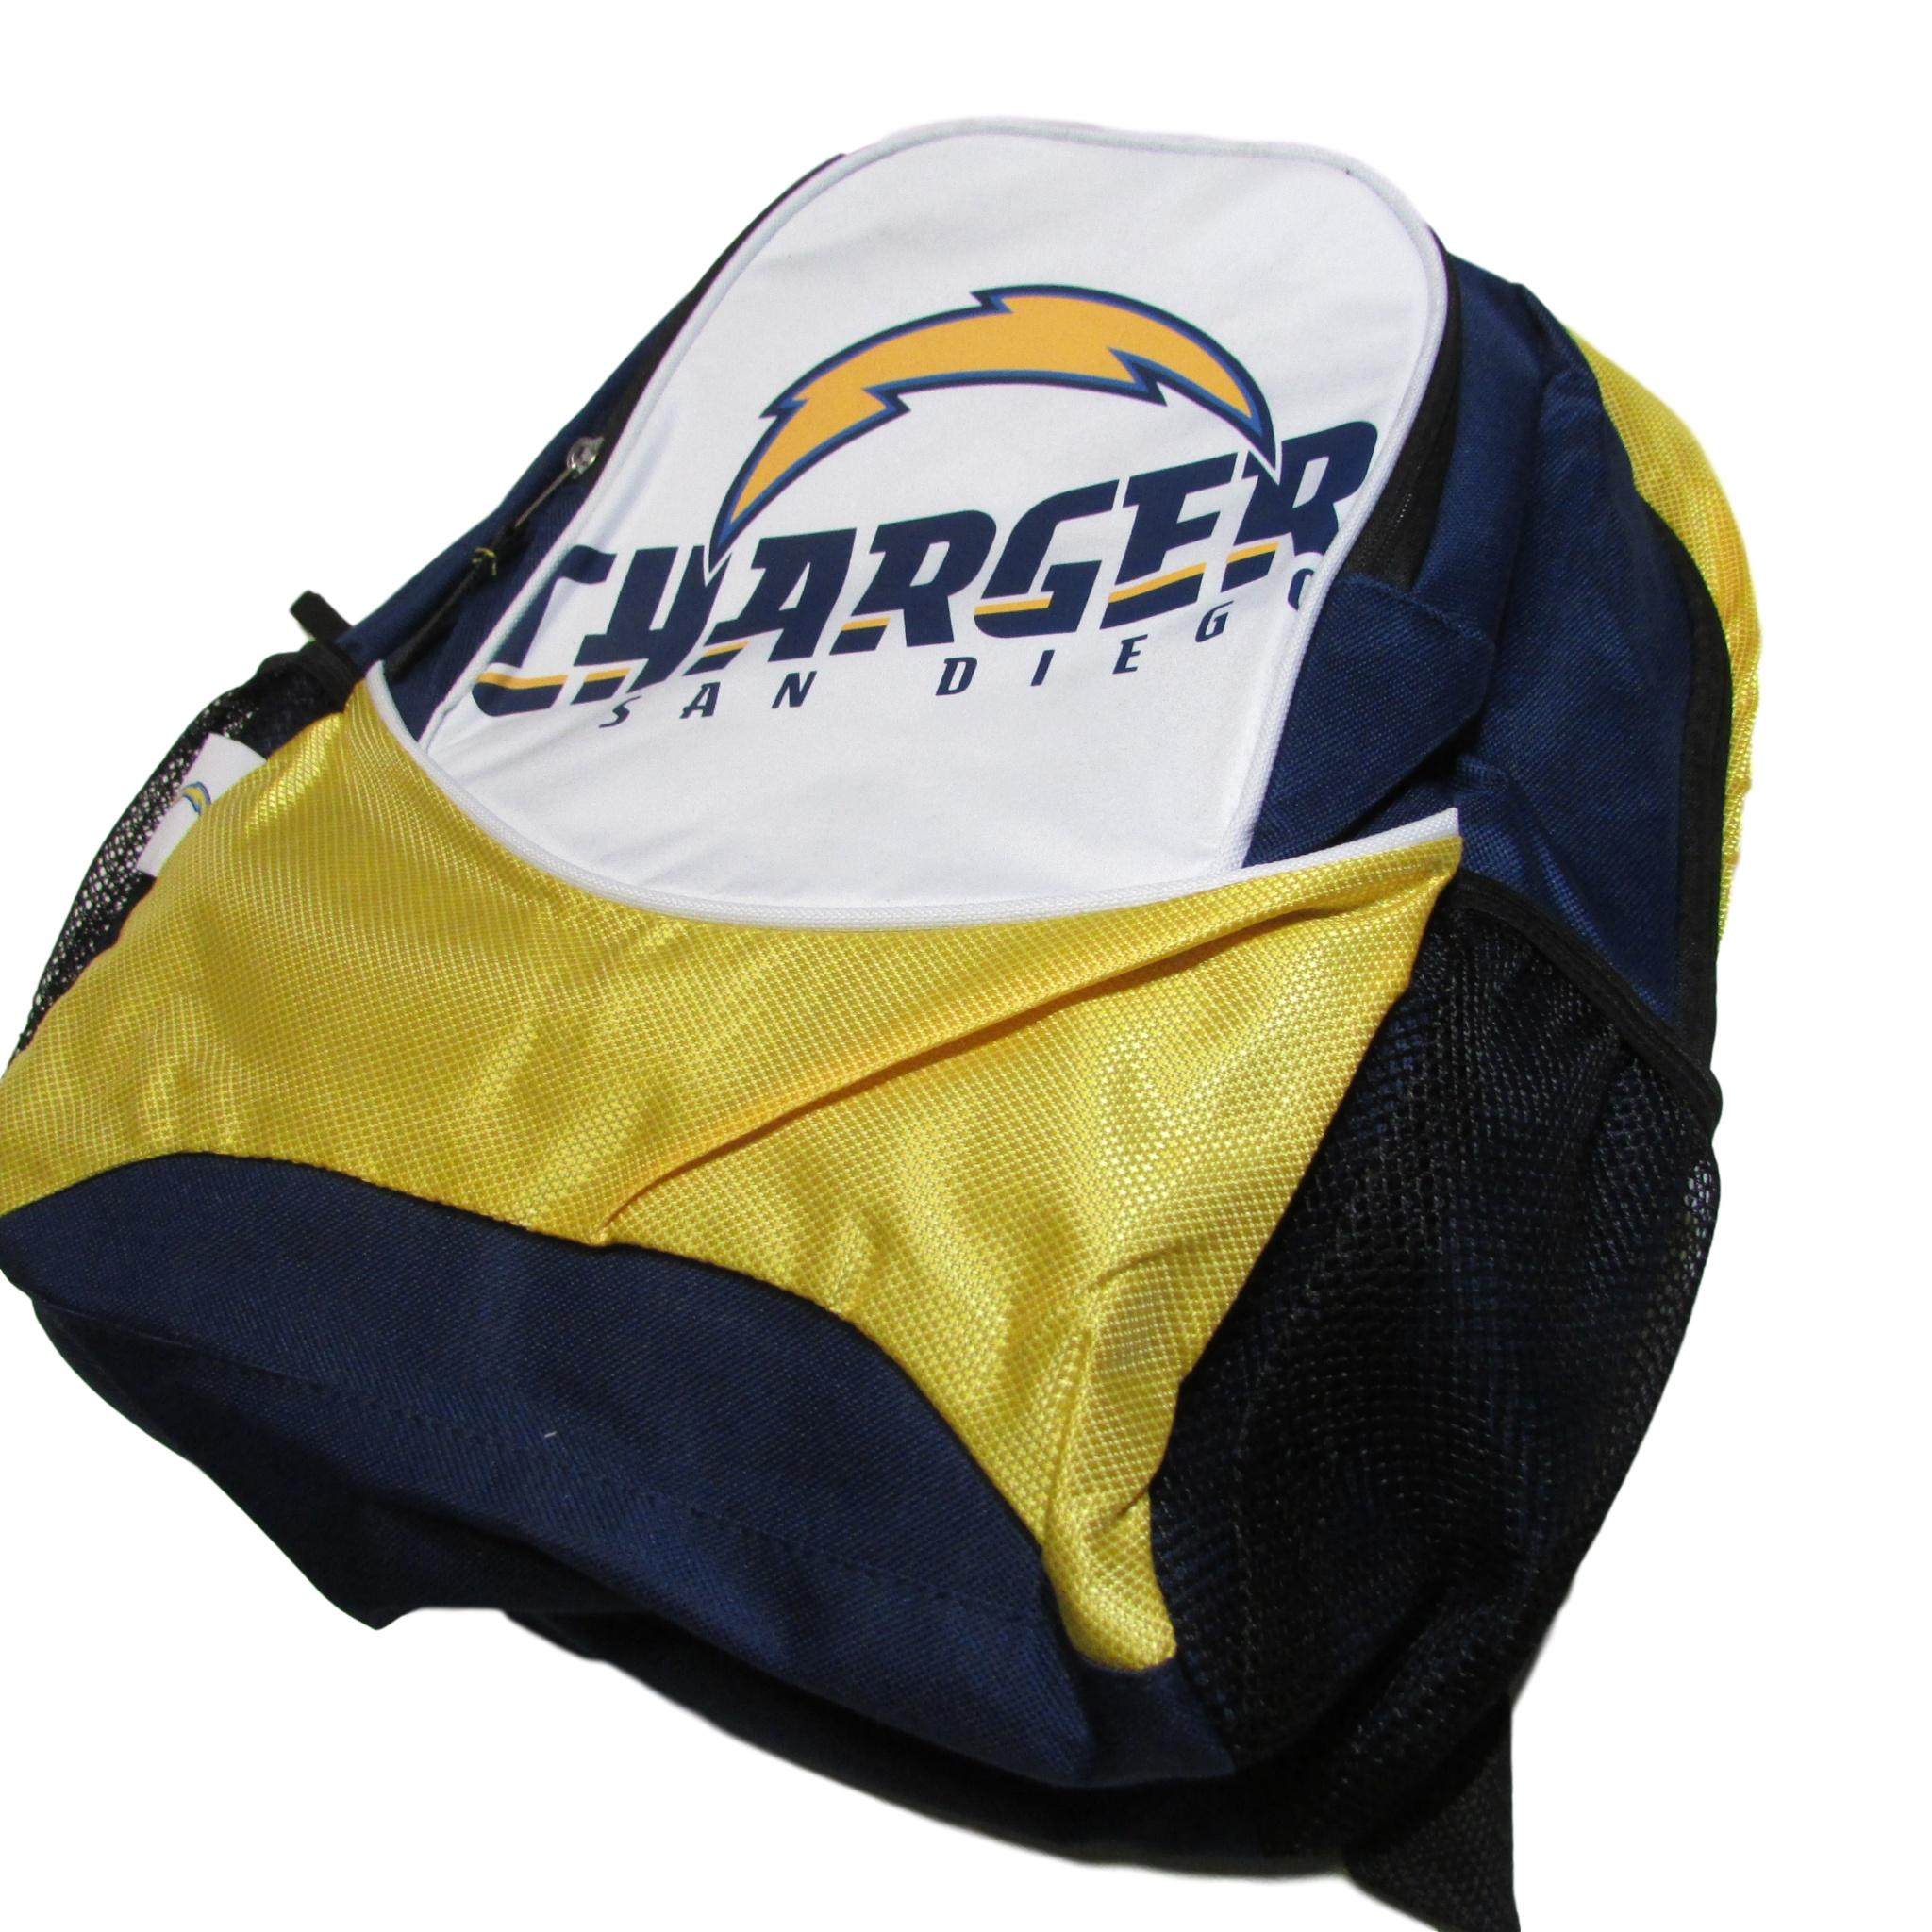 San Diego Chargers NFL Thunderbolt Backpack